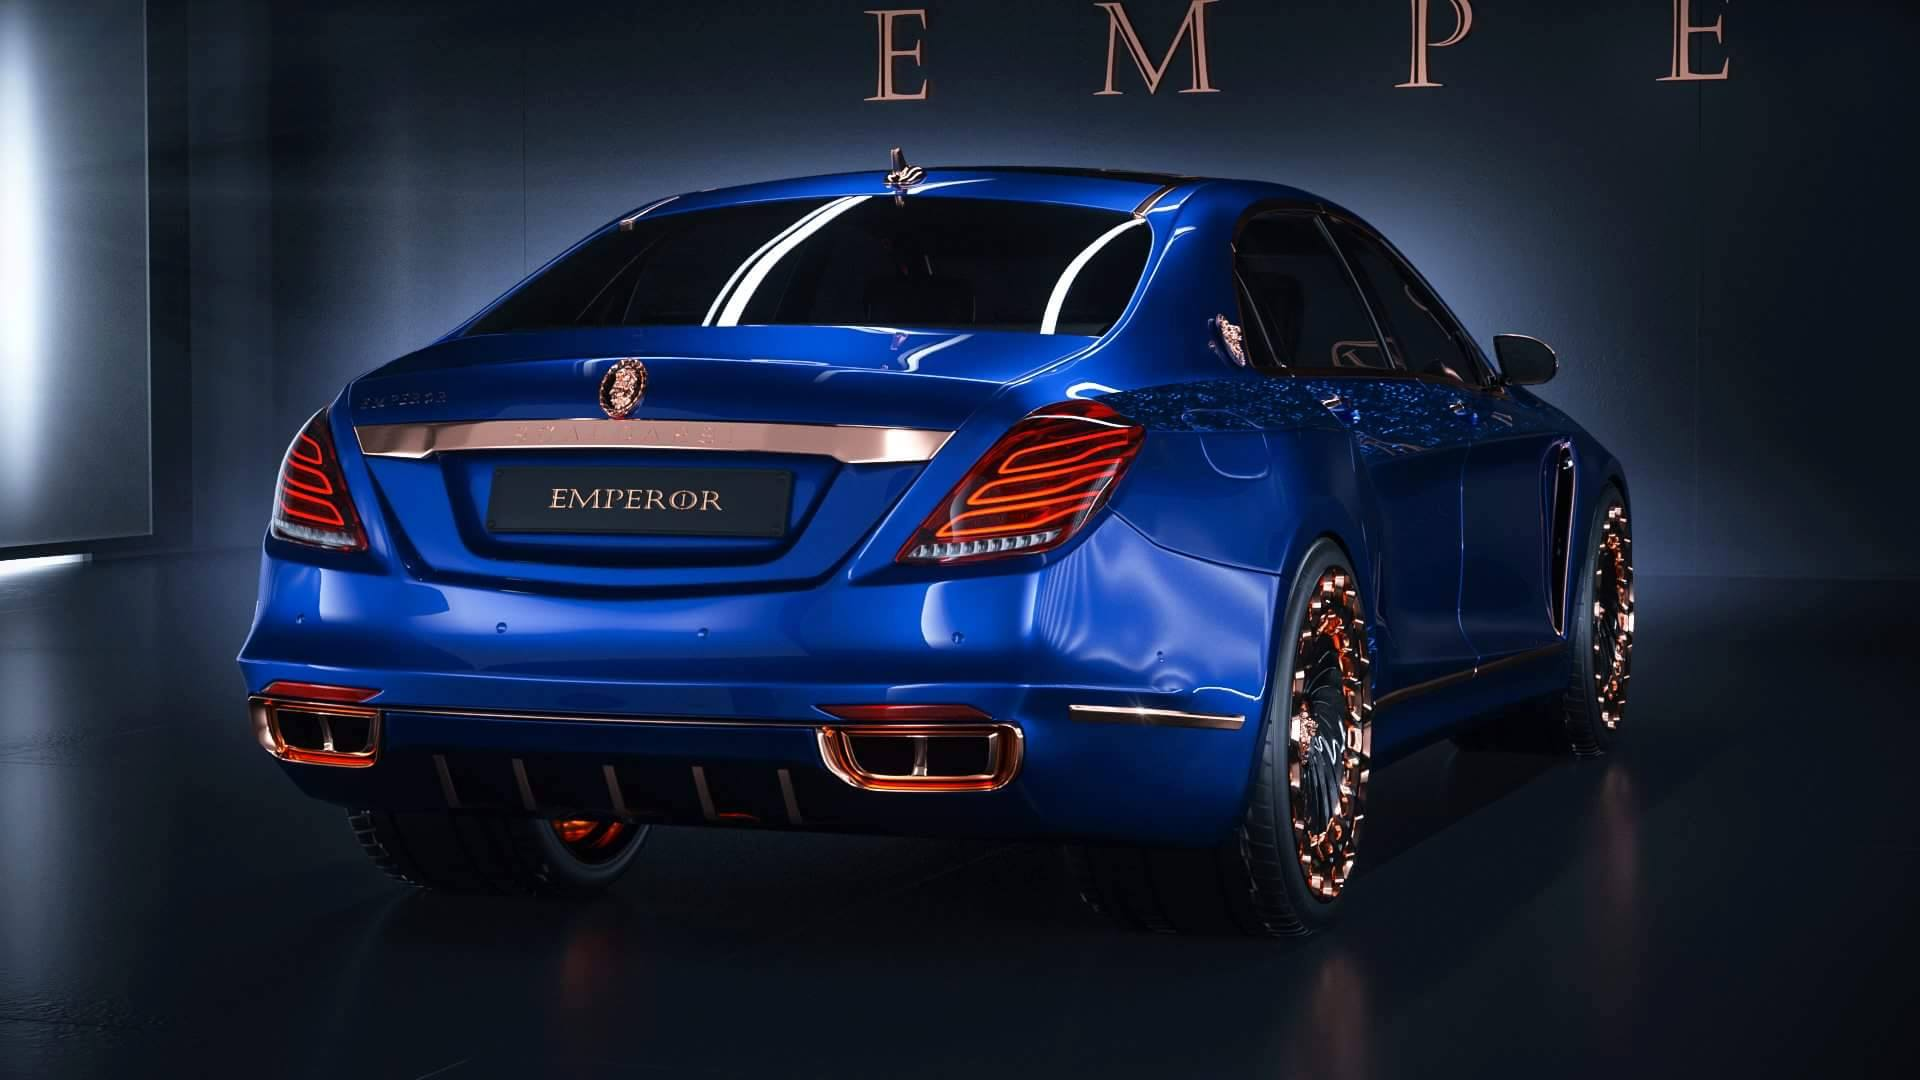 Scaldarsi Emperor I – based on the Mercedes-Maybach S600 ...